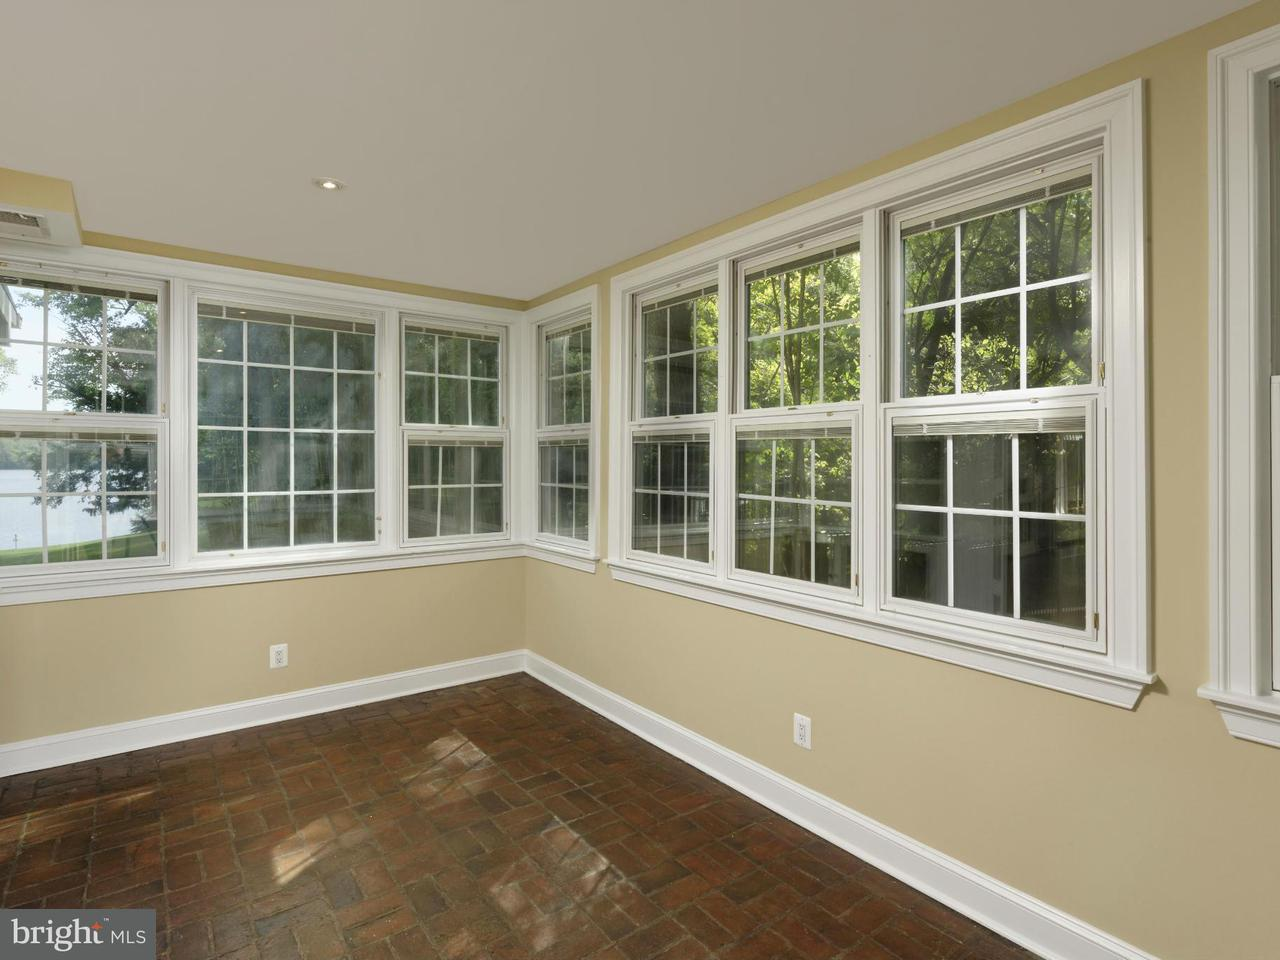 Additional photo for property listing at 820 HERBERT SPRINGS Road 820 HERBERT SPRINGS Road Alexandria, Virginia 22308 United States